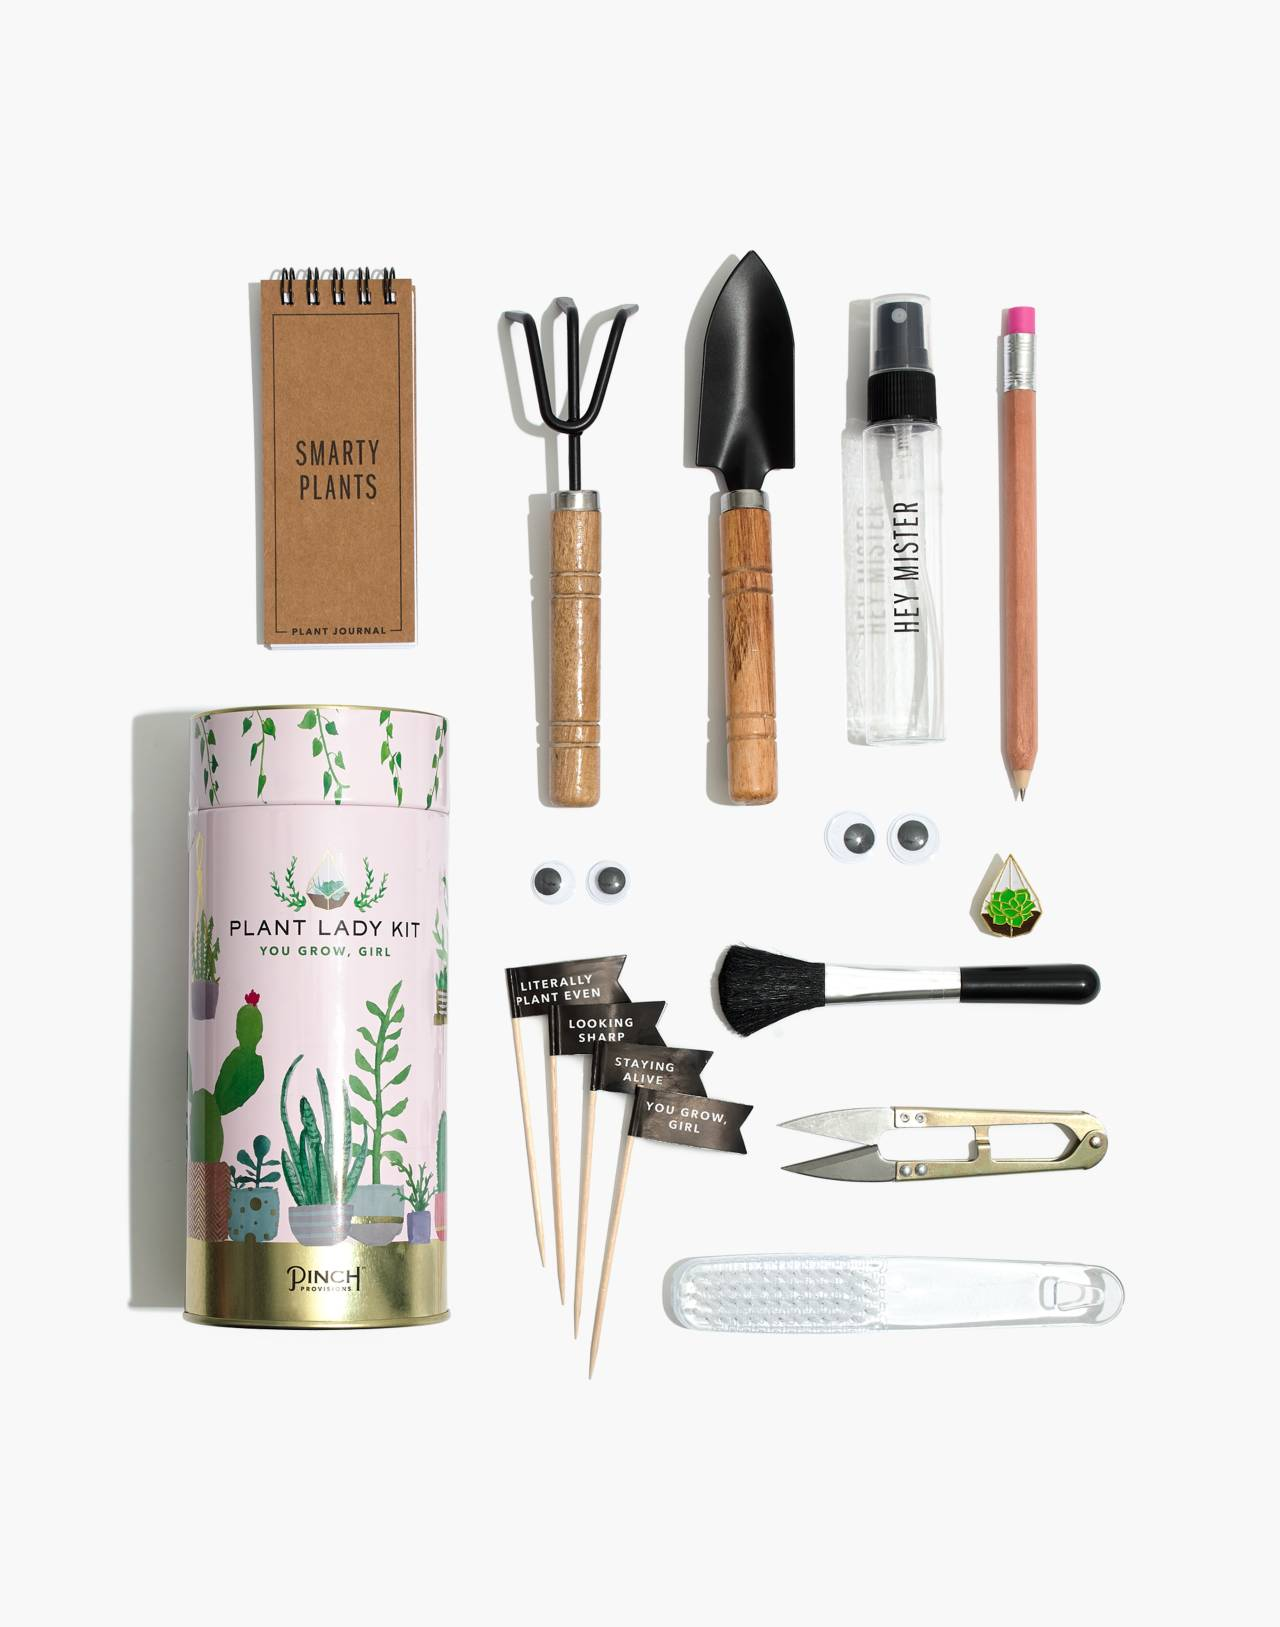 Pinch Provisions® Plant Lady Kit in plant kit image 2